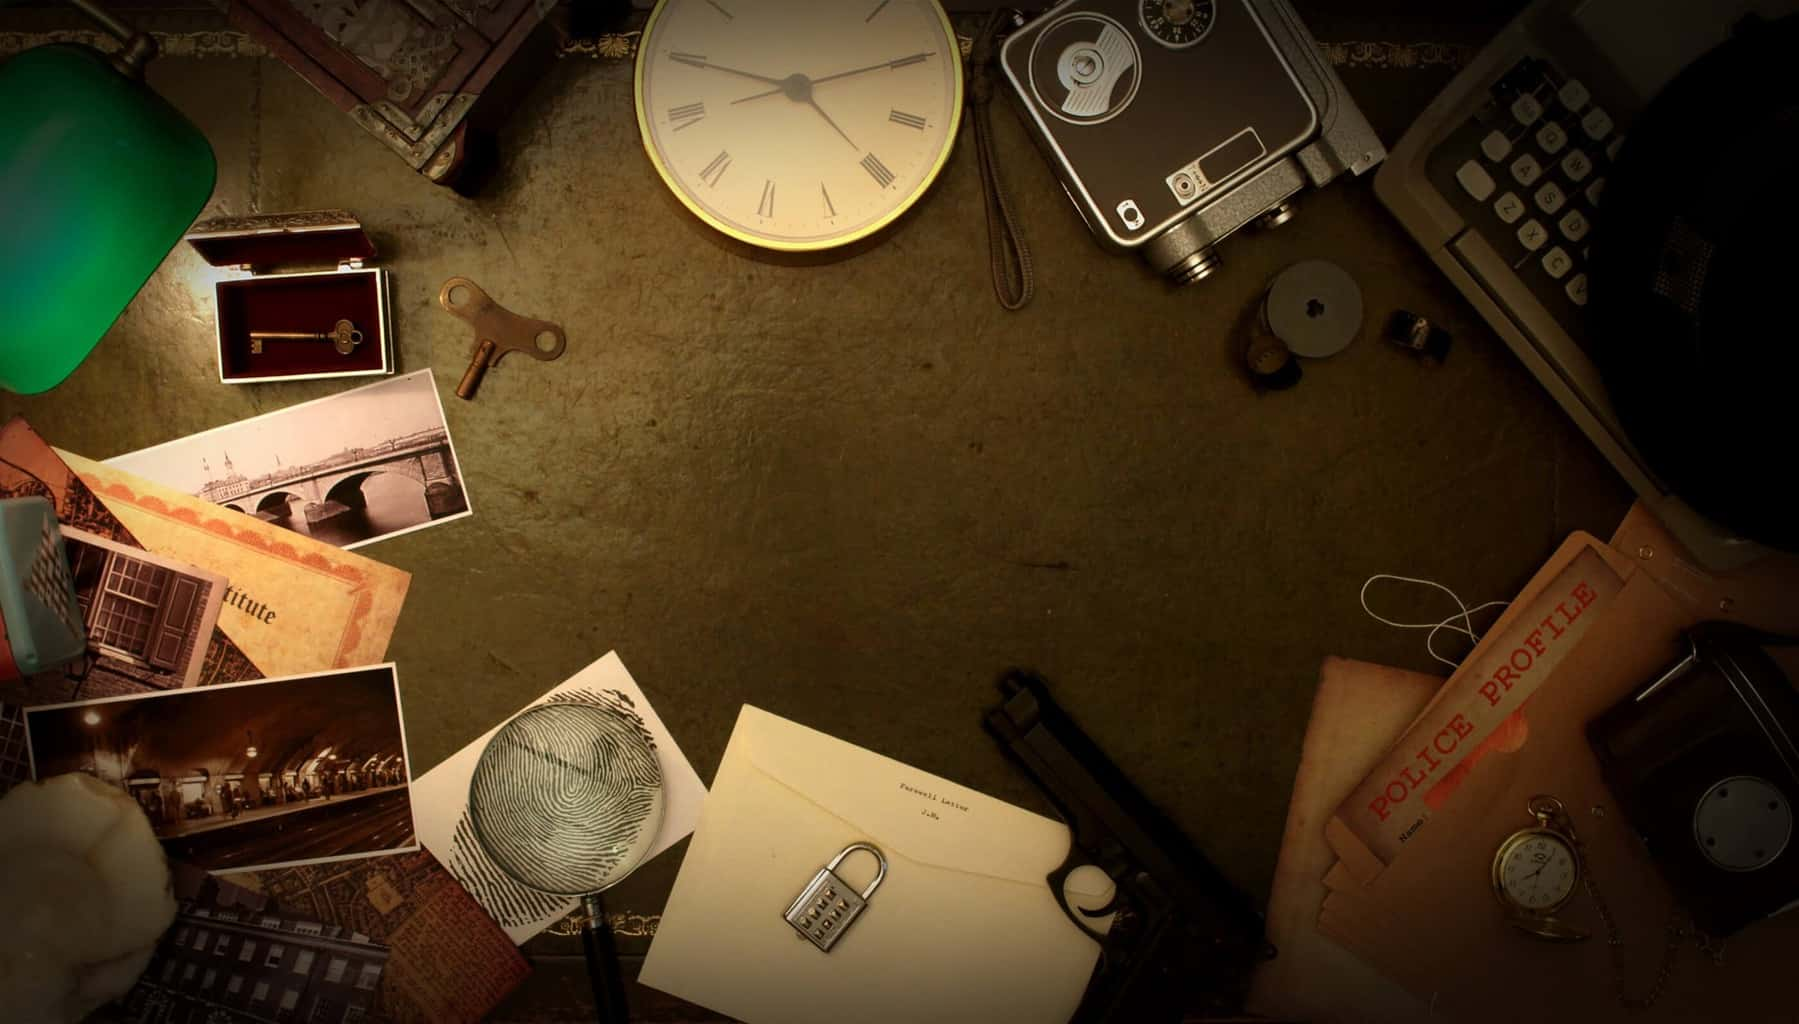 Escape room game props on a table, such as a clock, photographs, papers, and an audio recorder